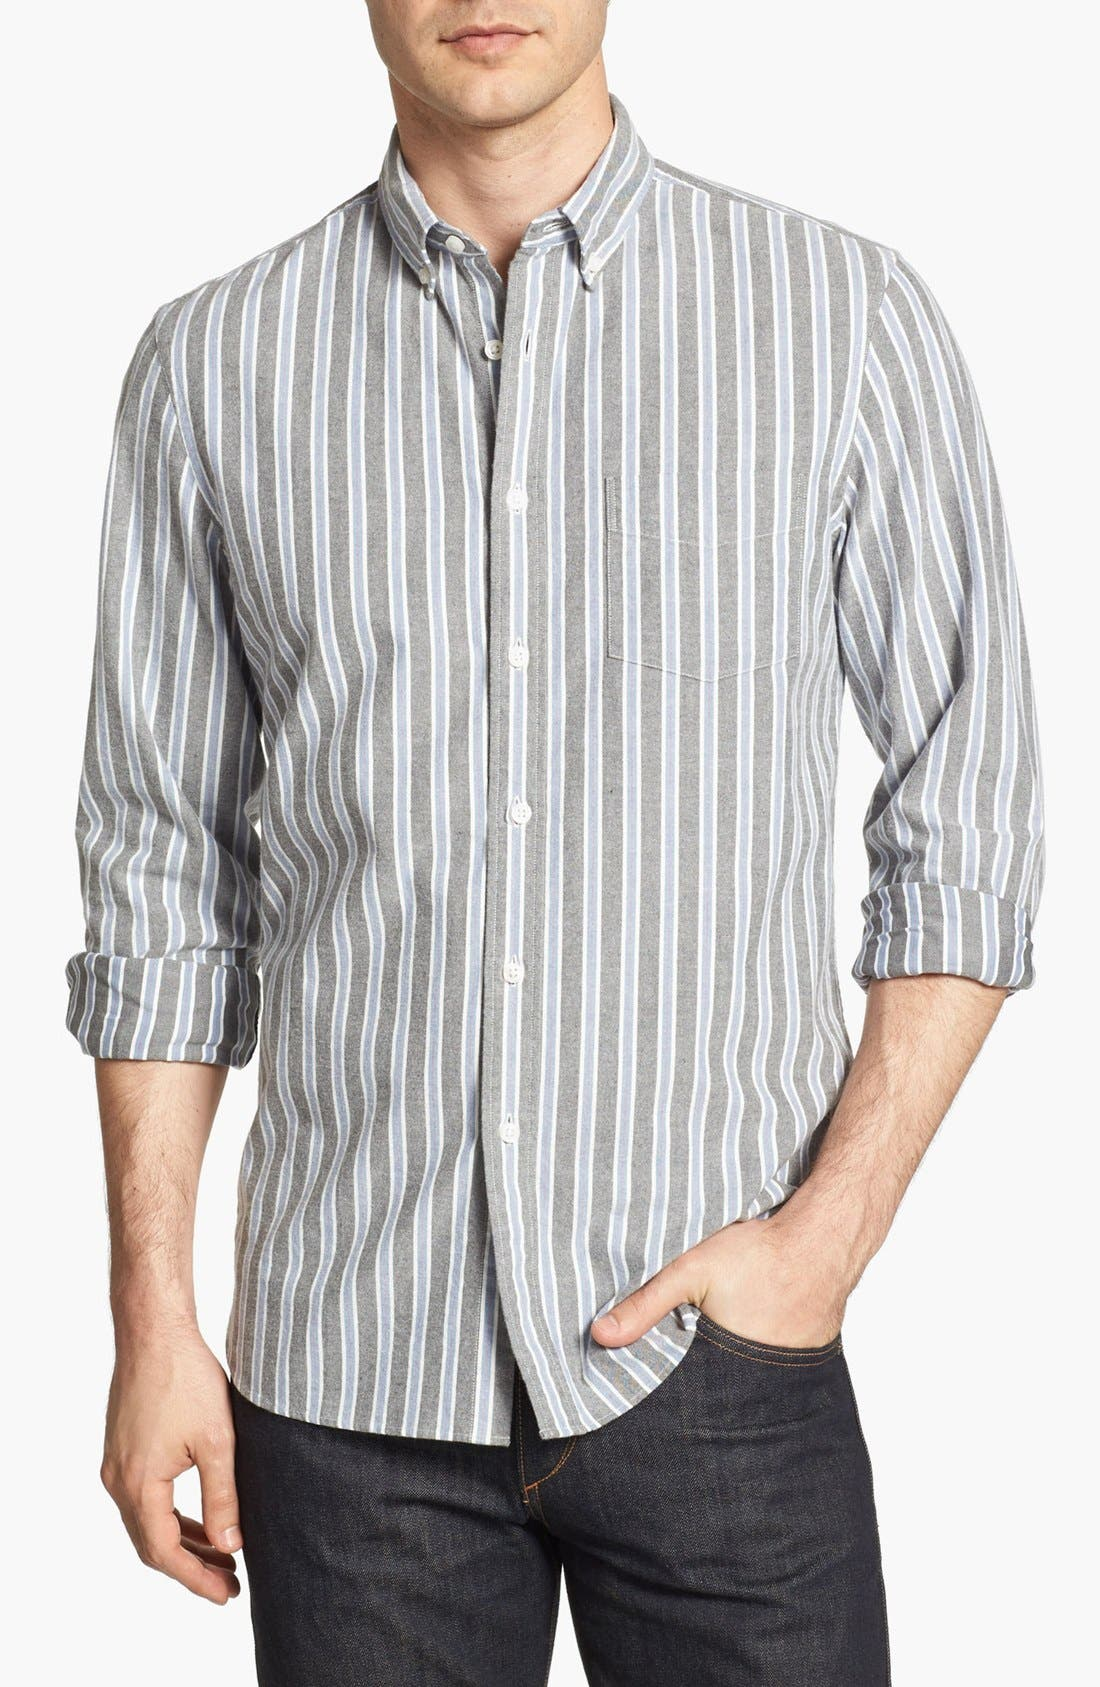 Alternate Image 1 Selected - Wallin & Bros. Trim Fit Sport Shirt (Online Exclusive)